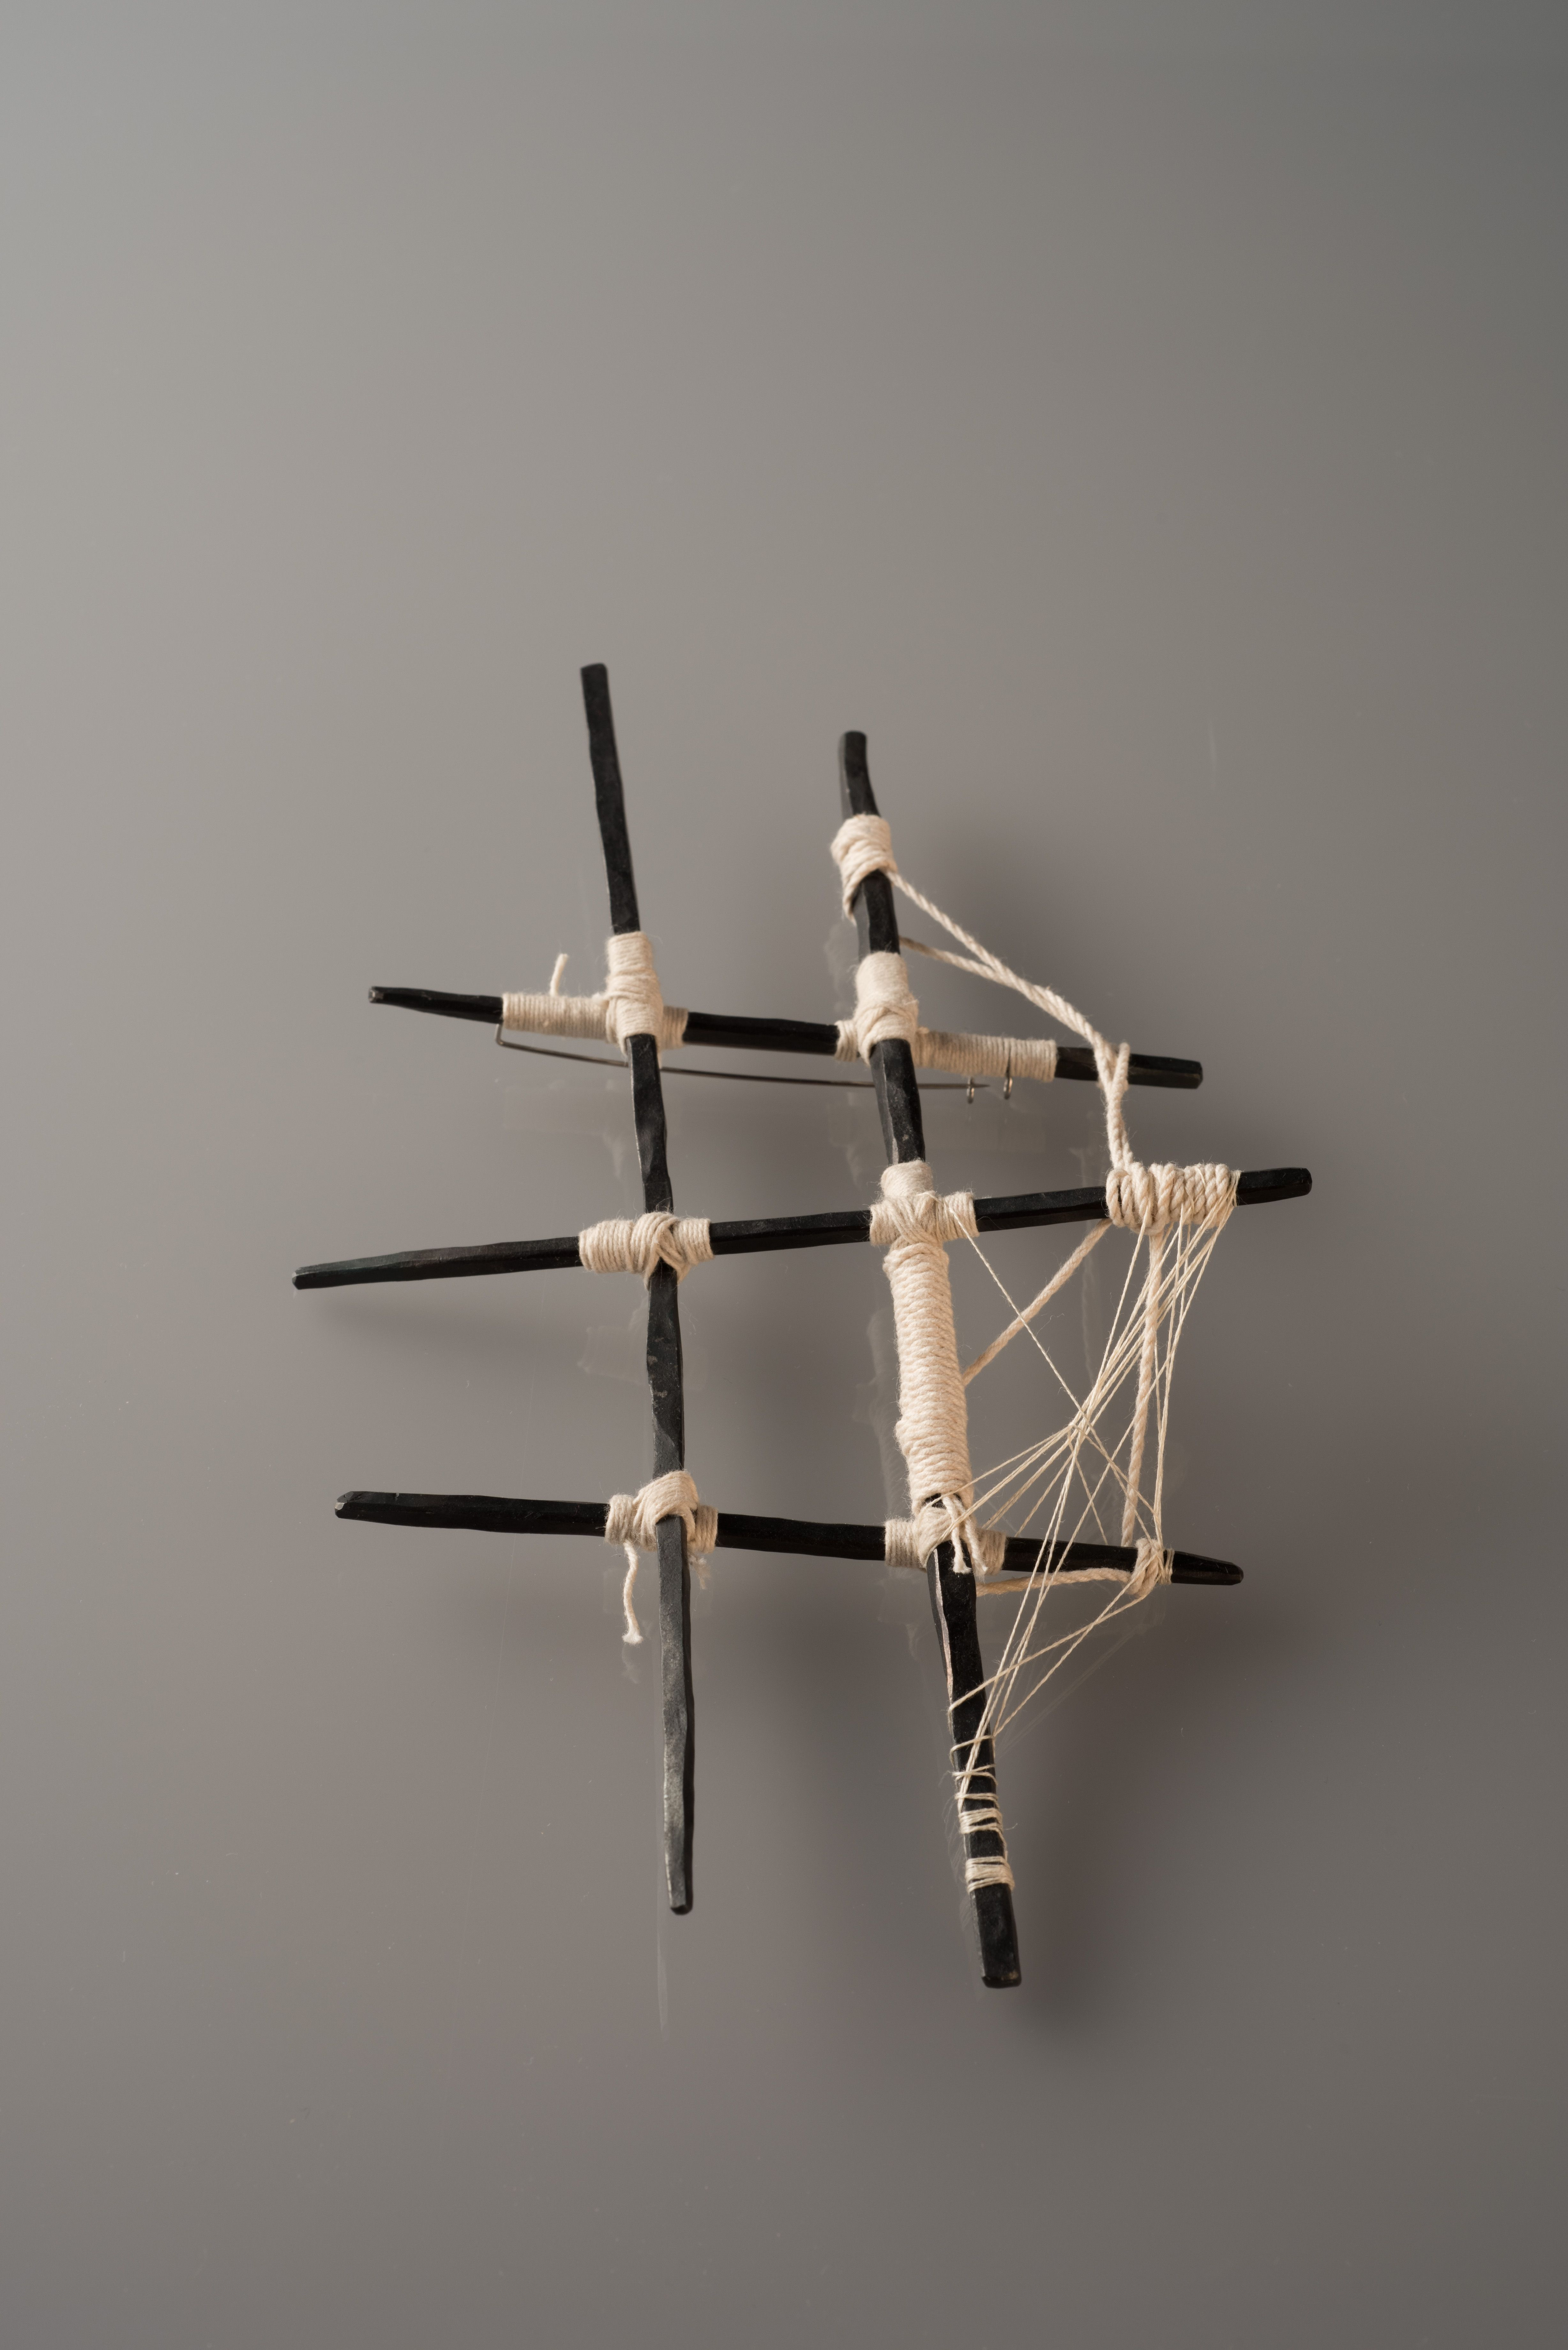 Moritz_Rasch- Great Piece! Could be inspiration for wall sculpture or free standing?